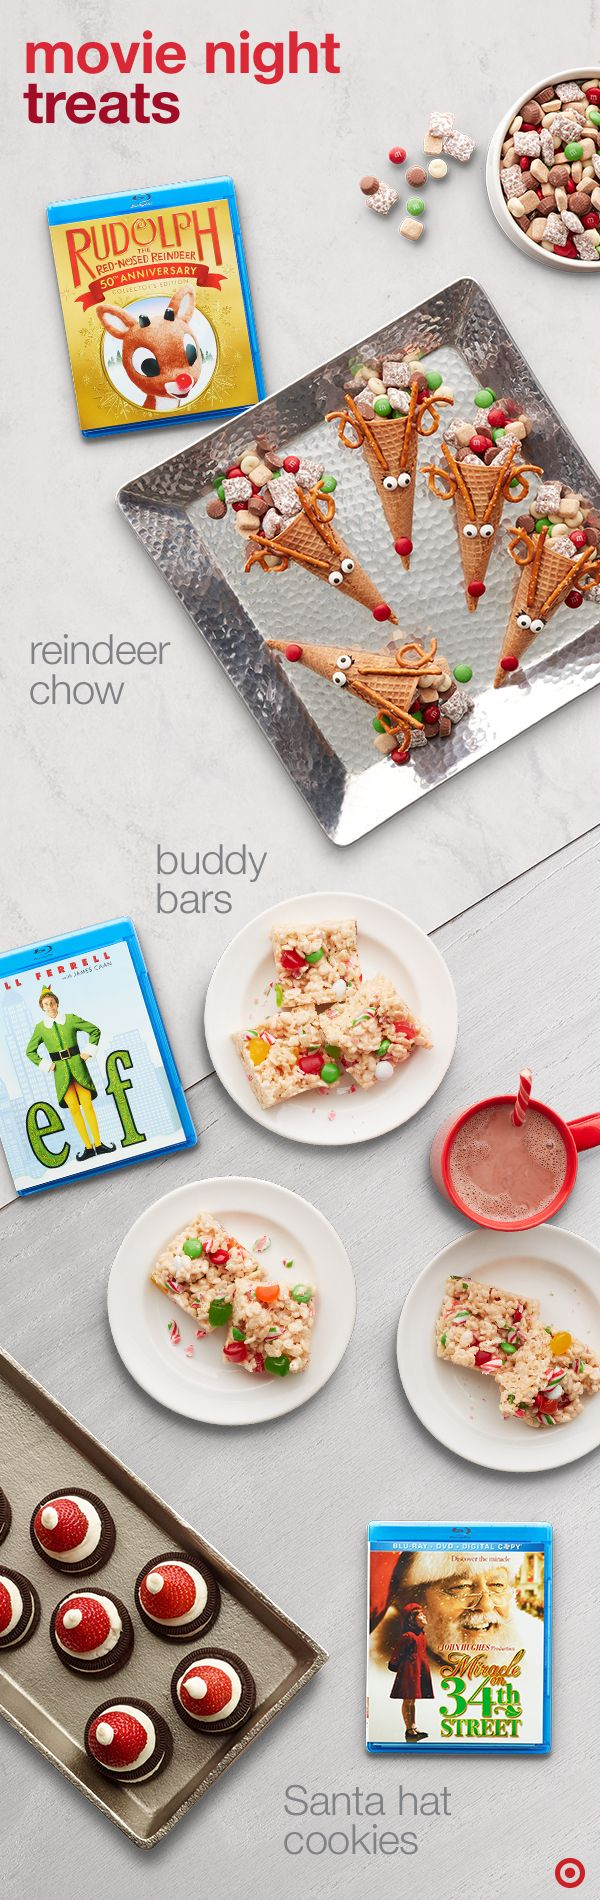 Turn your favorite movie into a holiday memory with some clever, creative food pairings. Whether it's Elf, Miracle on 34th Street or the ever-classic Rudolph the Red Nosed Reindeer, these fun recipes will help you and your family get into the cinematic spirit.